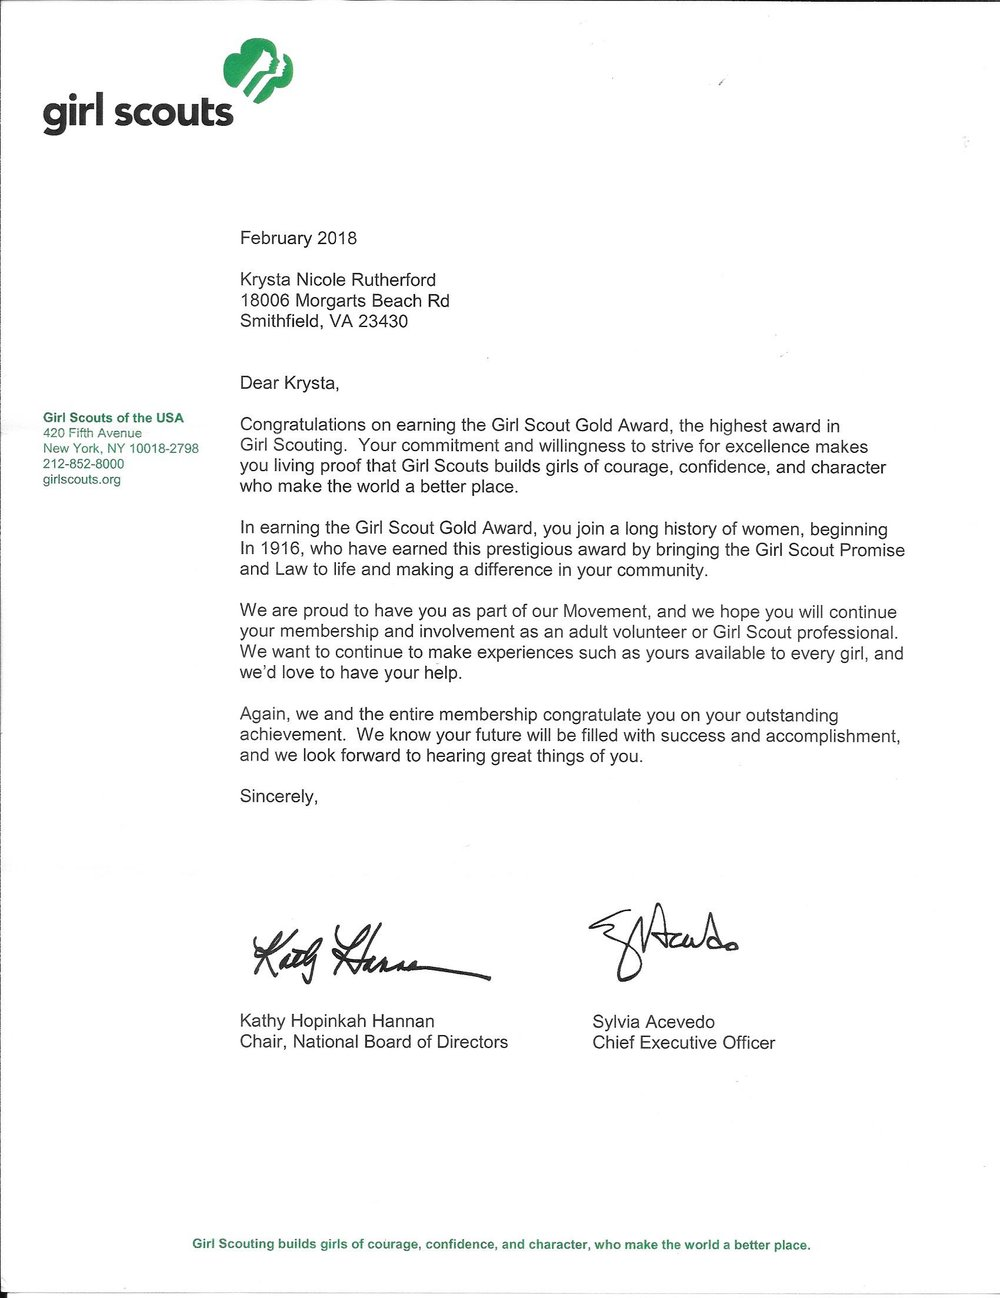 Letter from Girl Scouts.jpg